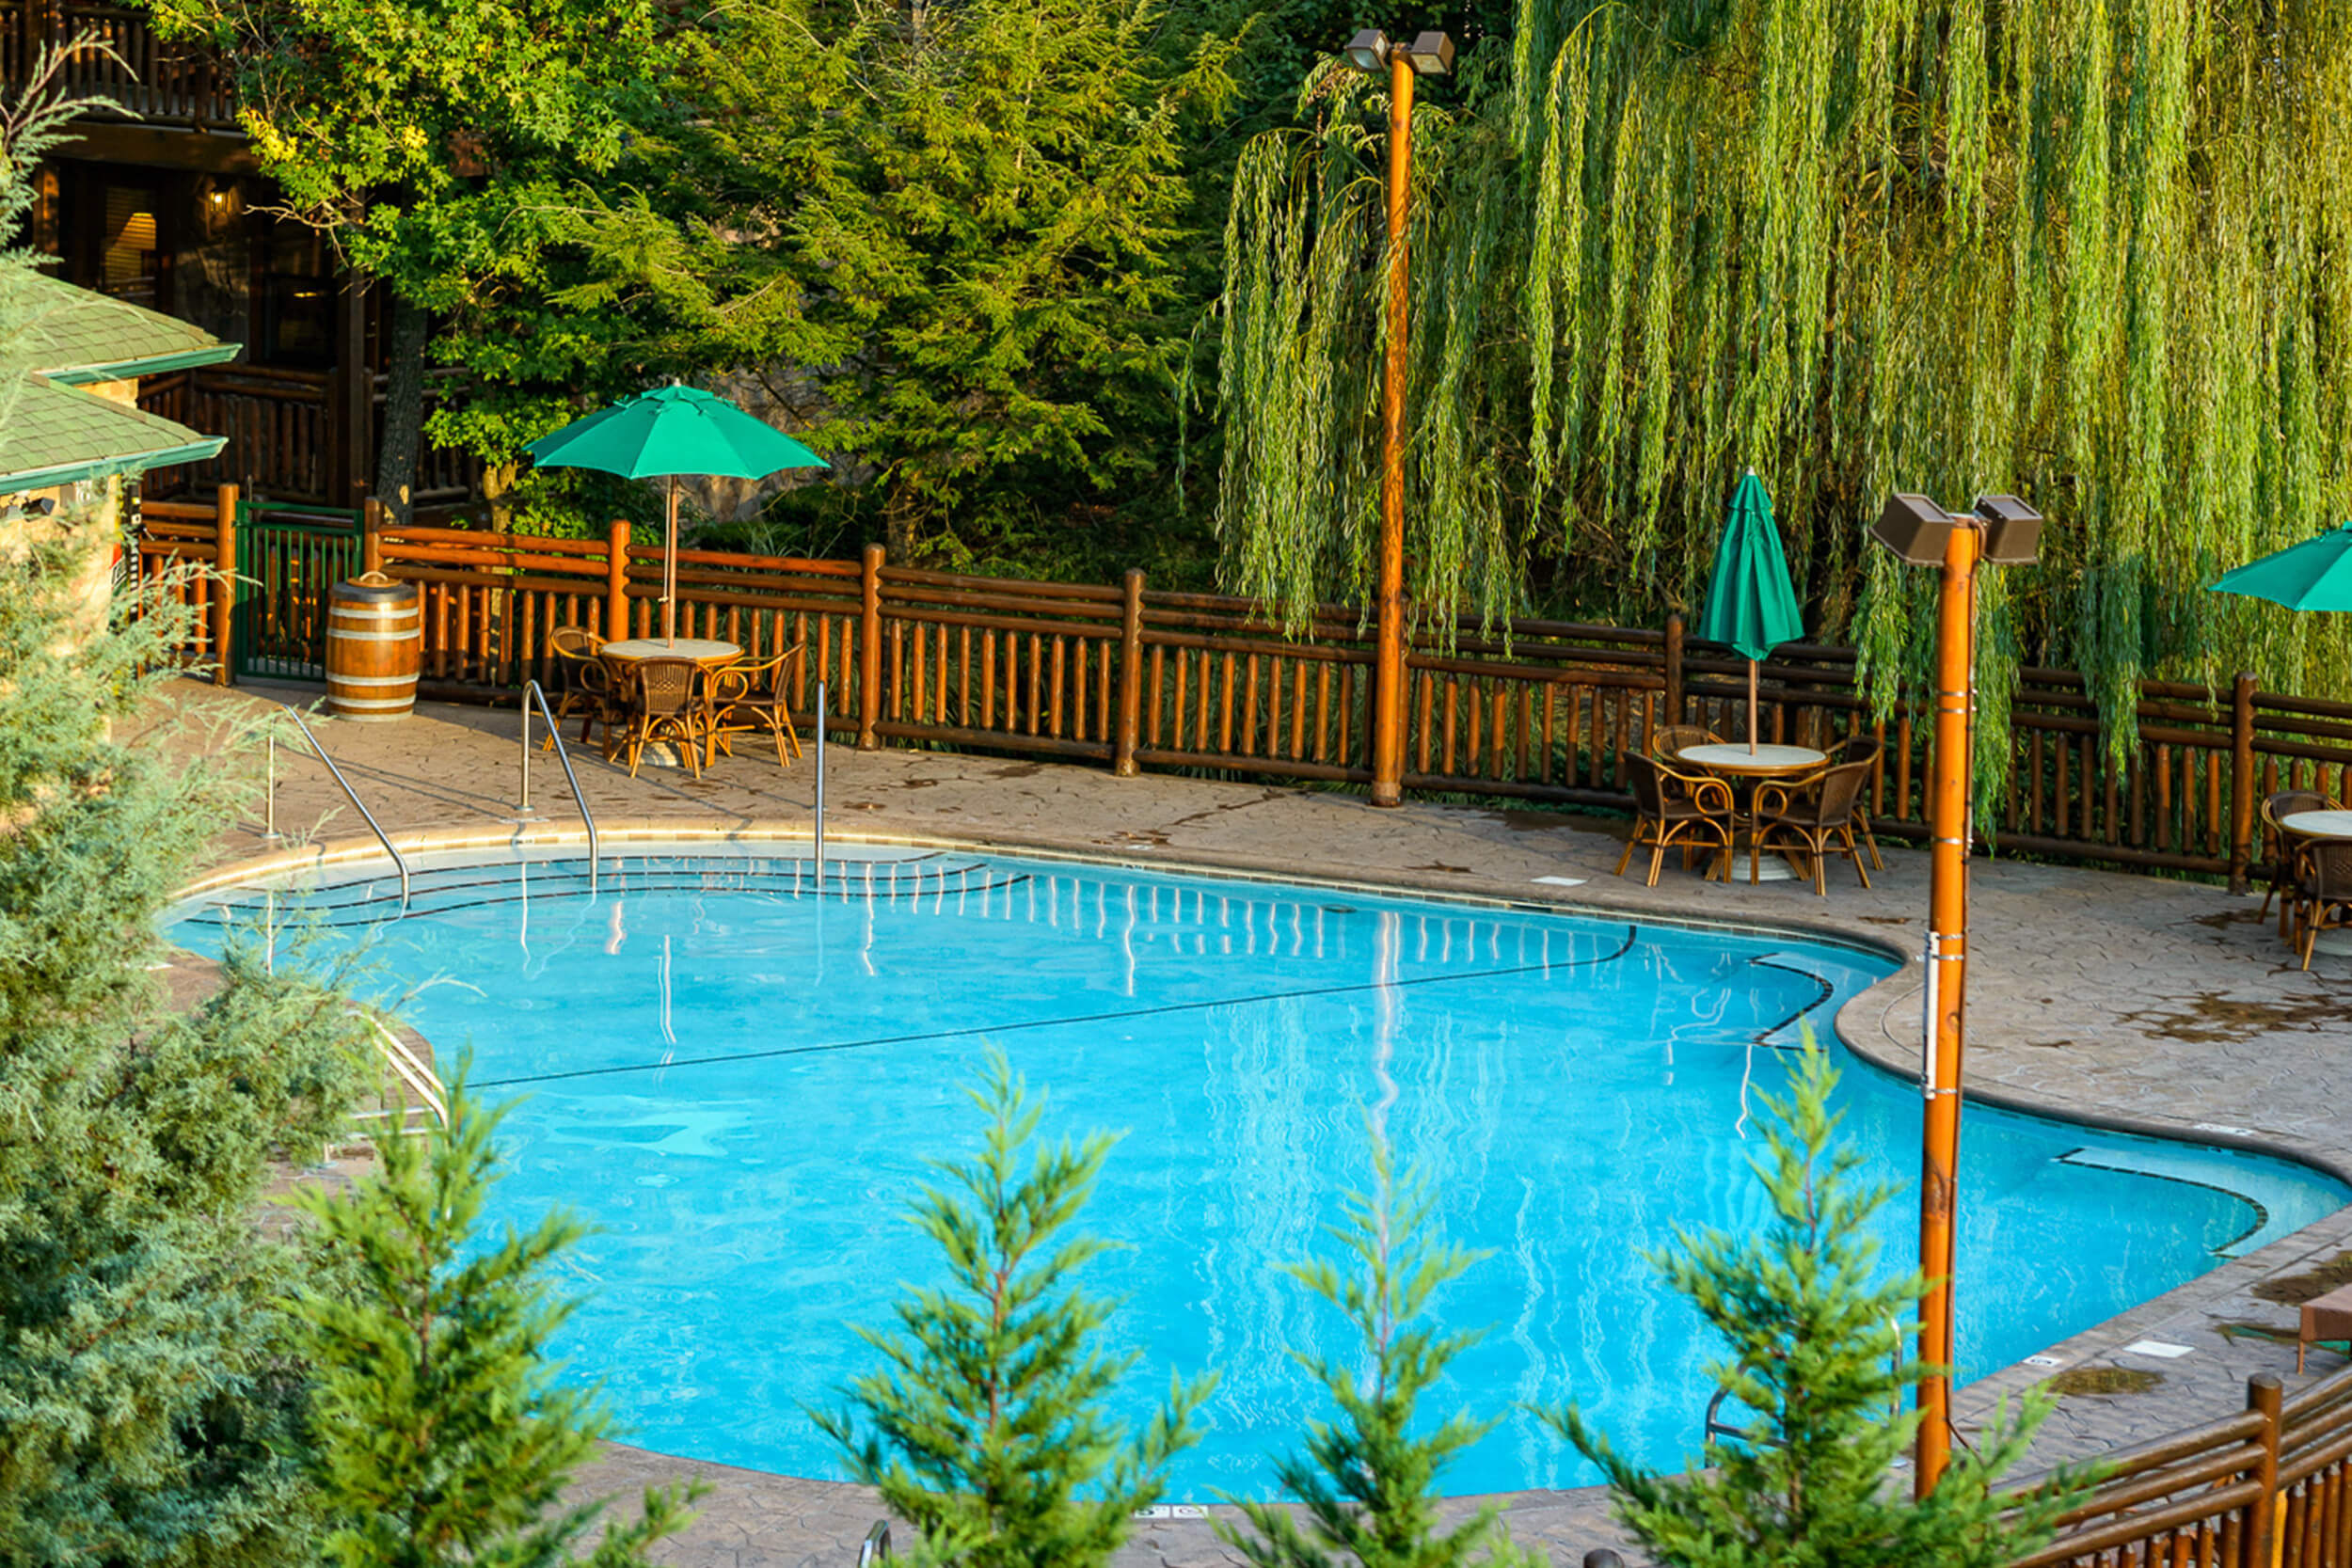 Outdoor pool with tables, chairs and umbrellas | Westgate Smoky Mountain Resort & Spa